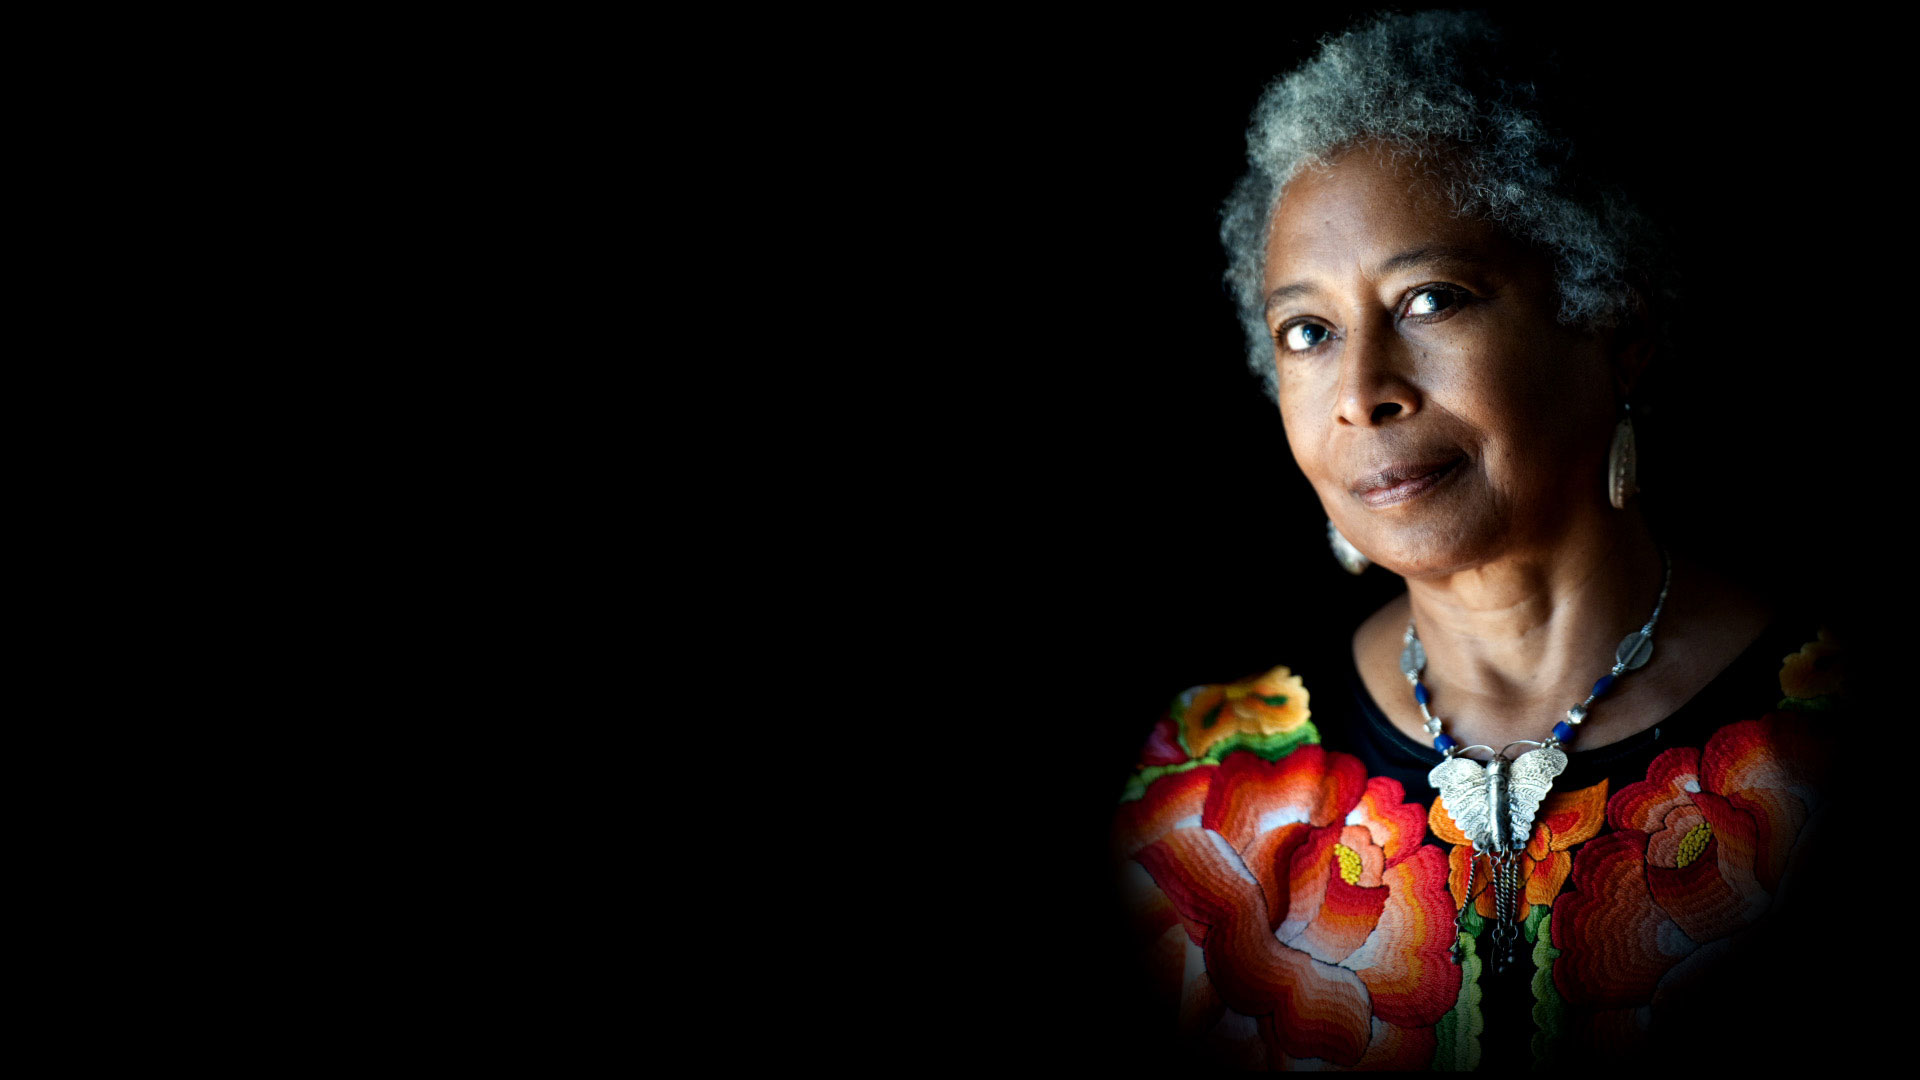 alice walker essay beauty essay in search of our mothers gardens essay